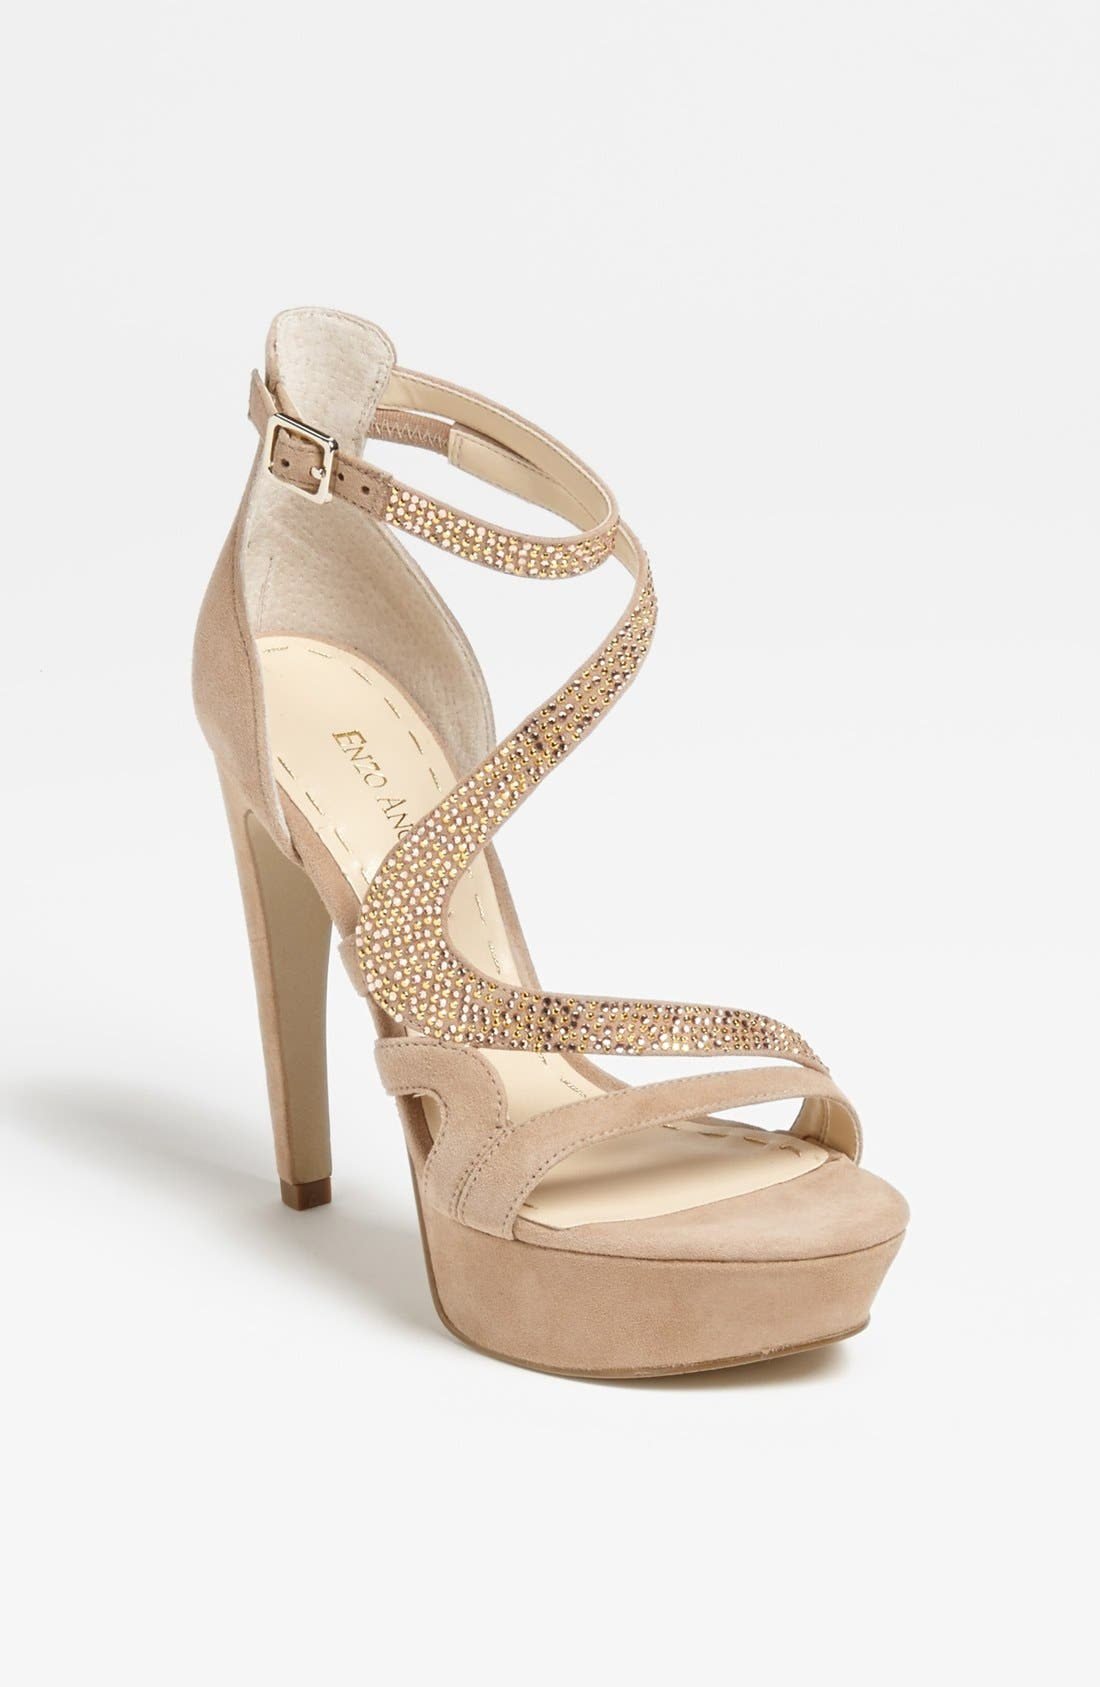 Alternate Image 1 Selected - Enzo Angiolini 'Taelon' Sandal